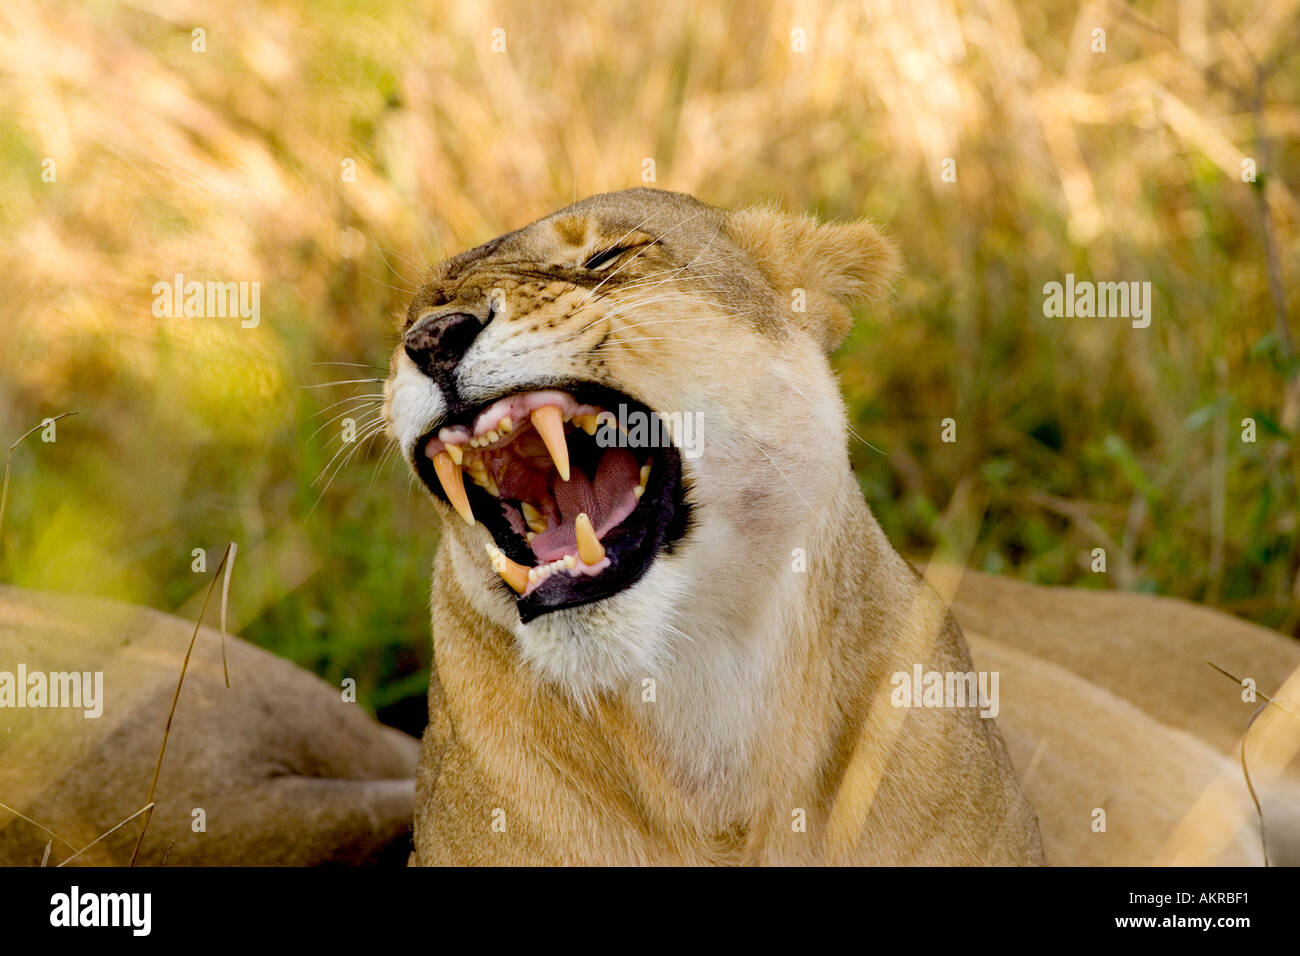 lioness yawning Stock Photo